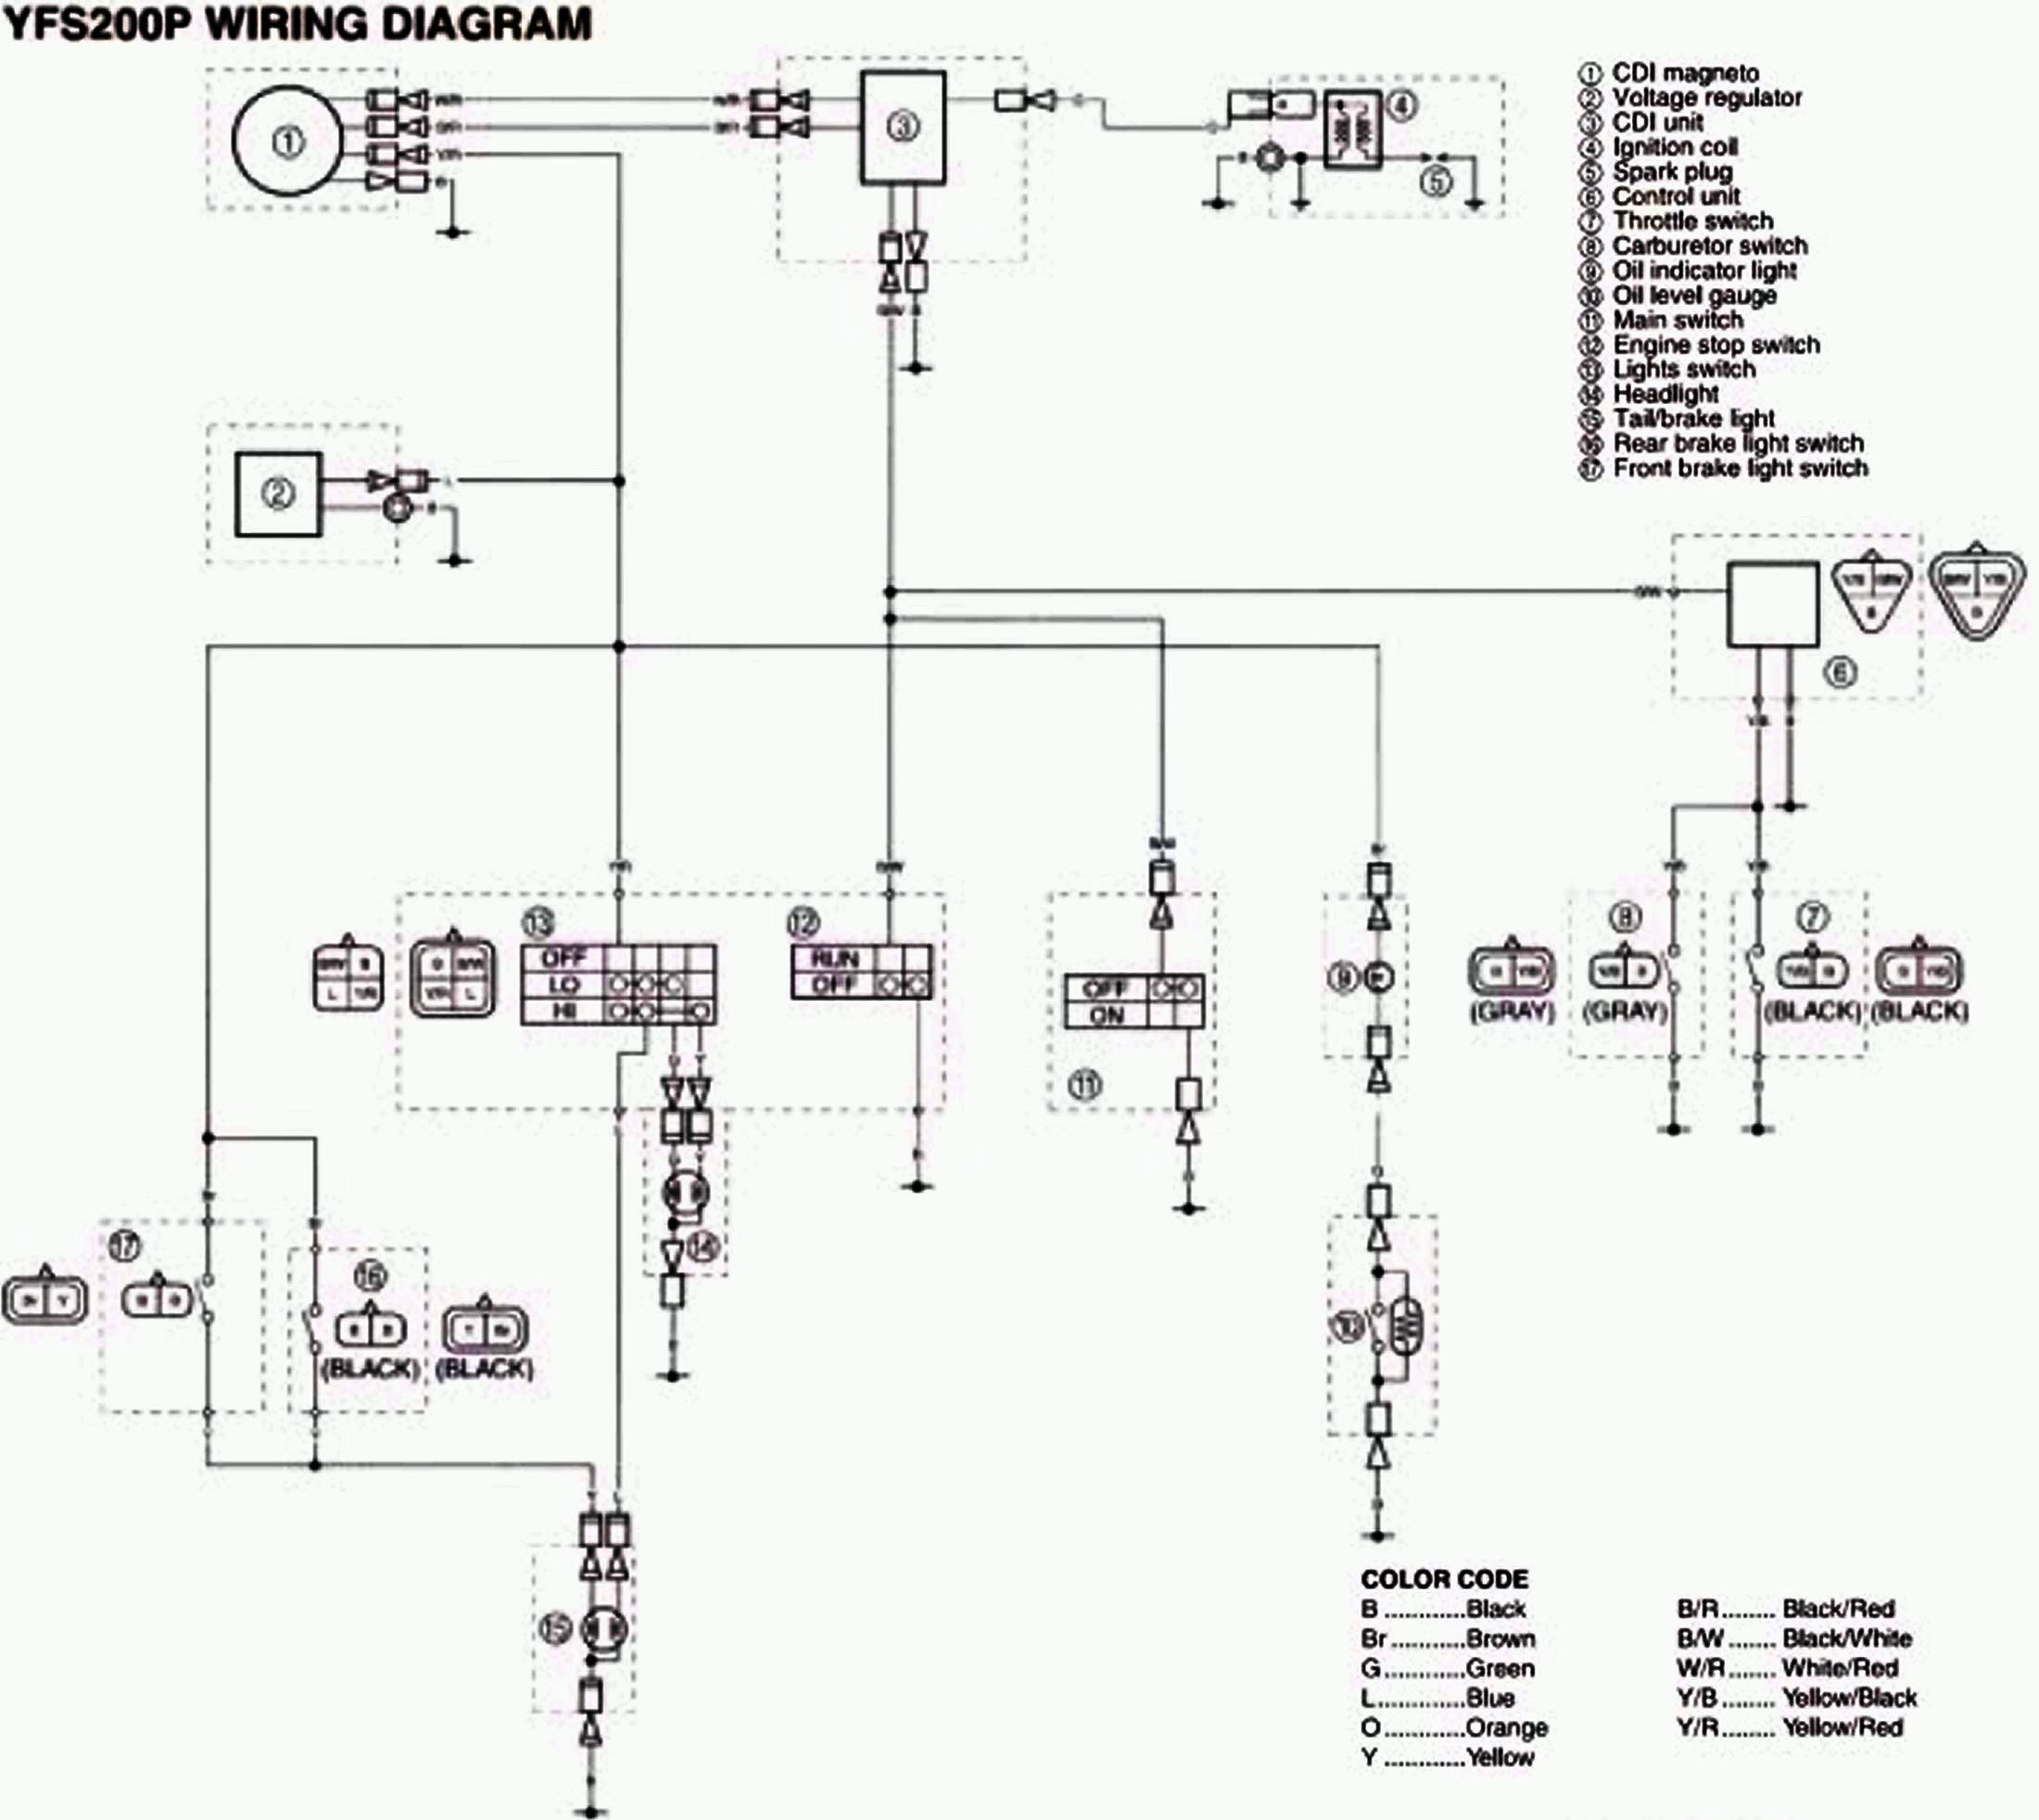 DIAGRAM] 98 Yamaha Blaster Wiring Diagram FULL Version HD Quality Wiring  Diagram - GSPOTDIAGRAM.ITALIARESIDENCE.IT | 1998 200 Yamaha Blaster Wiring Diagram |  | gspotdiagram.italiaresidence.it